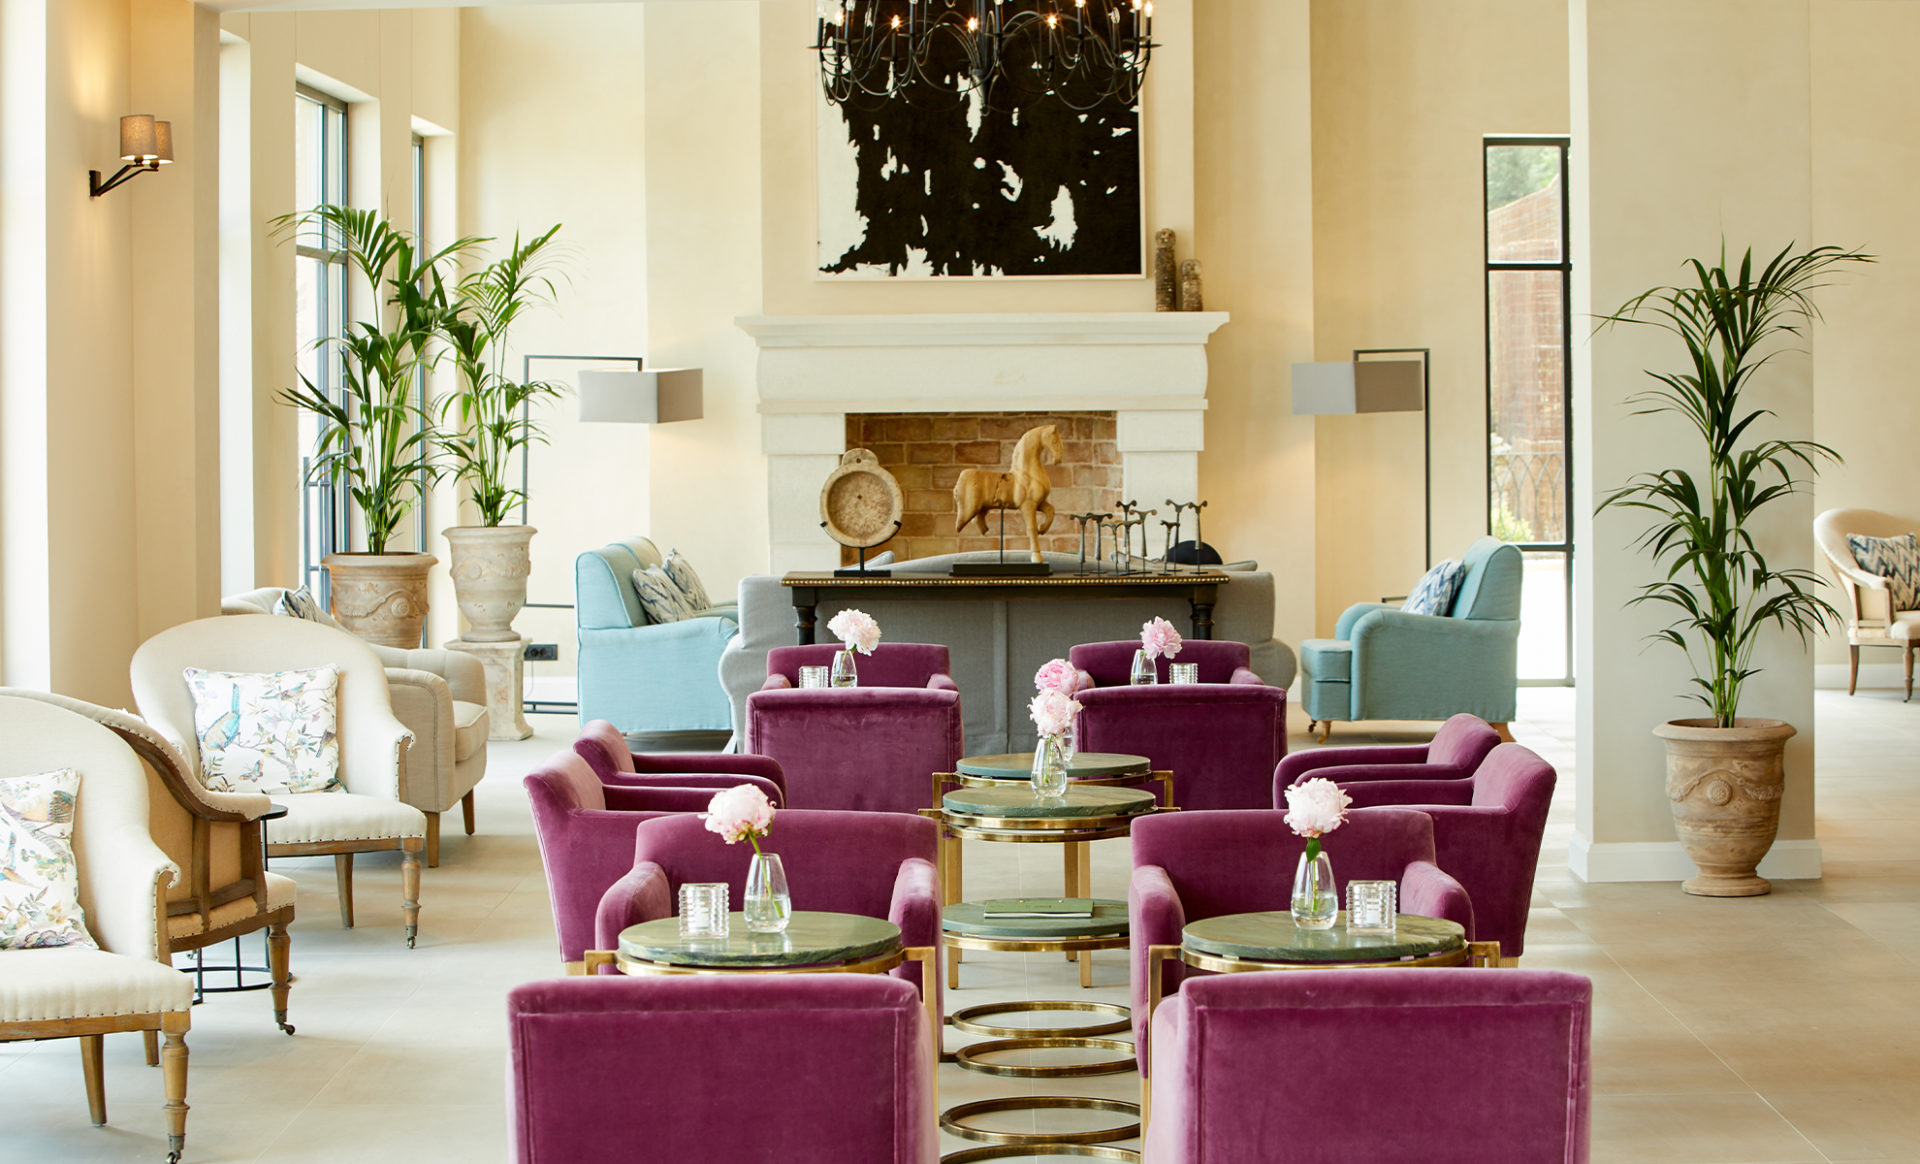 MARBELLA-NIDO-SUITES--Corfu-lobby-with-chairs